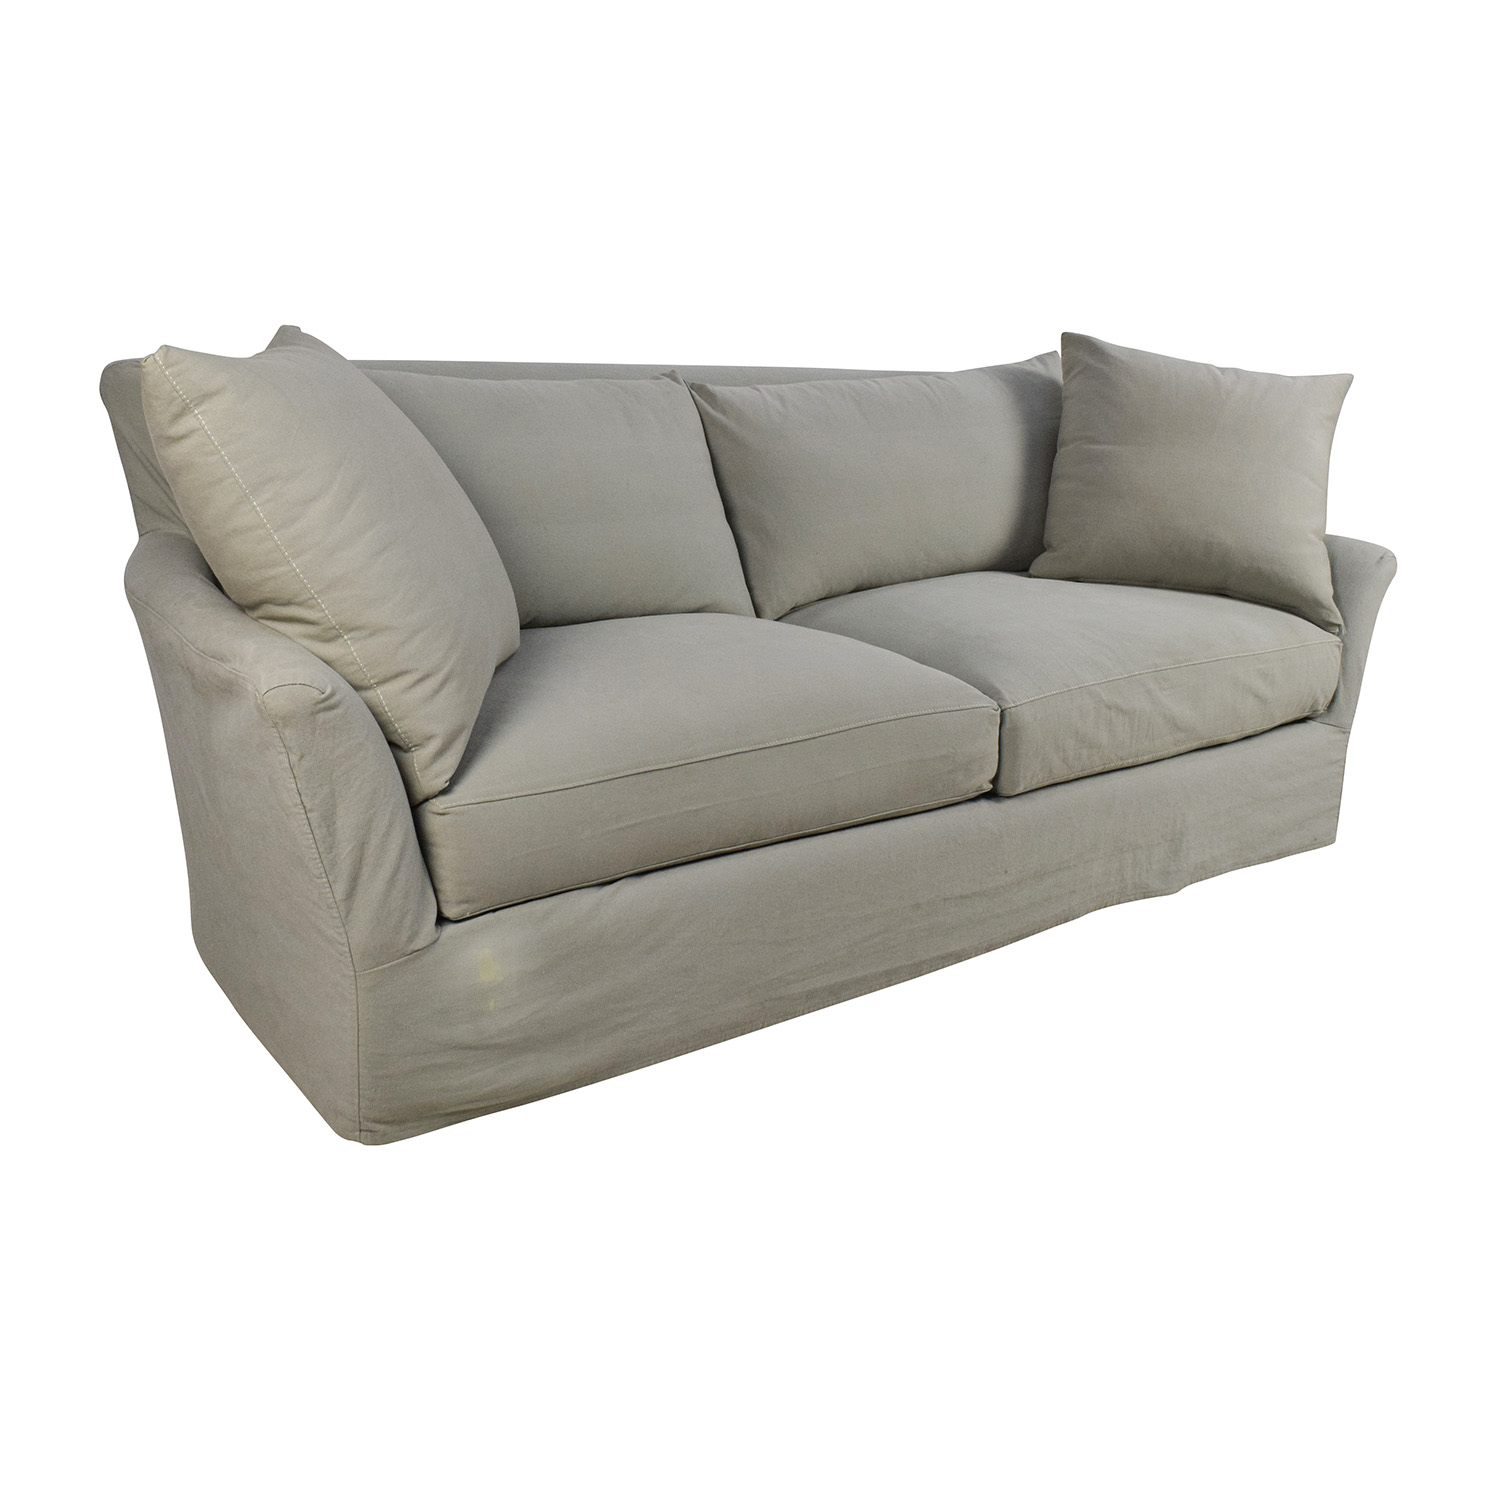 Buying A Second Hand Sofa 70 Off Crate And Barrel Crate And Barrel Willow Sage